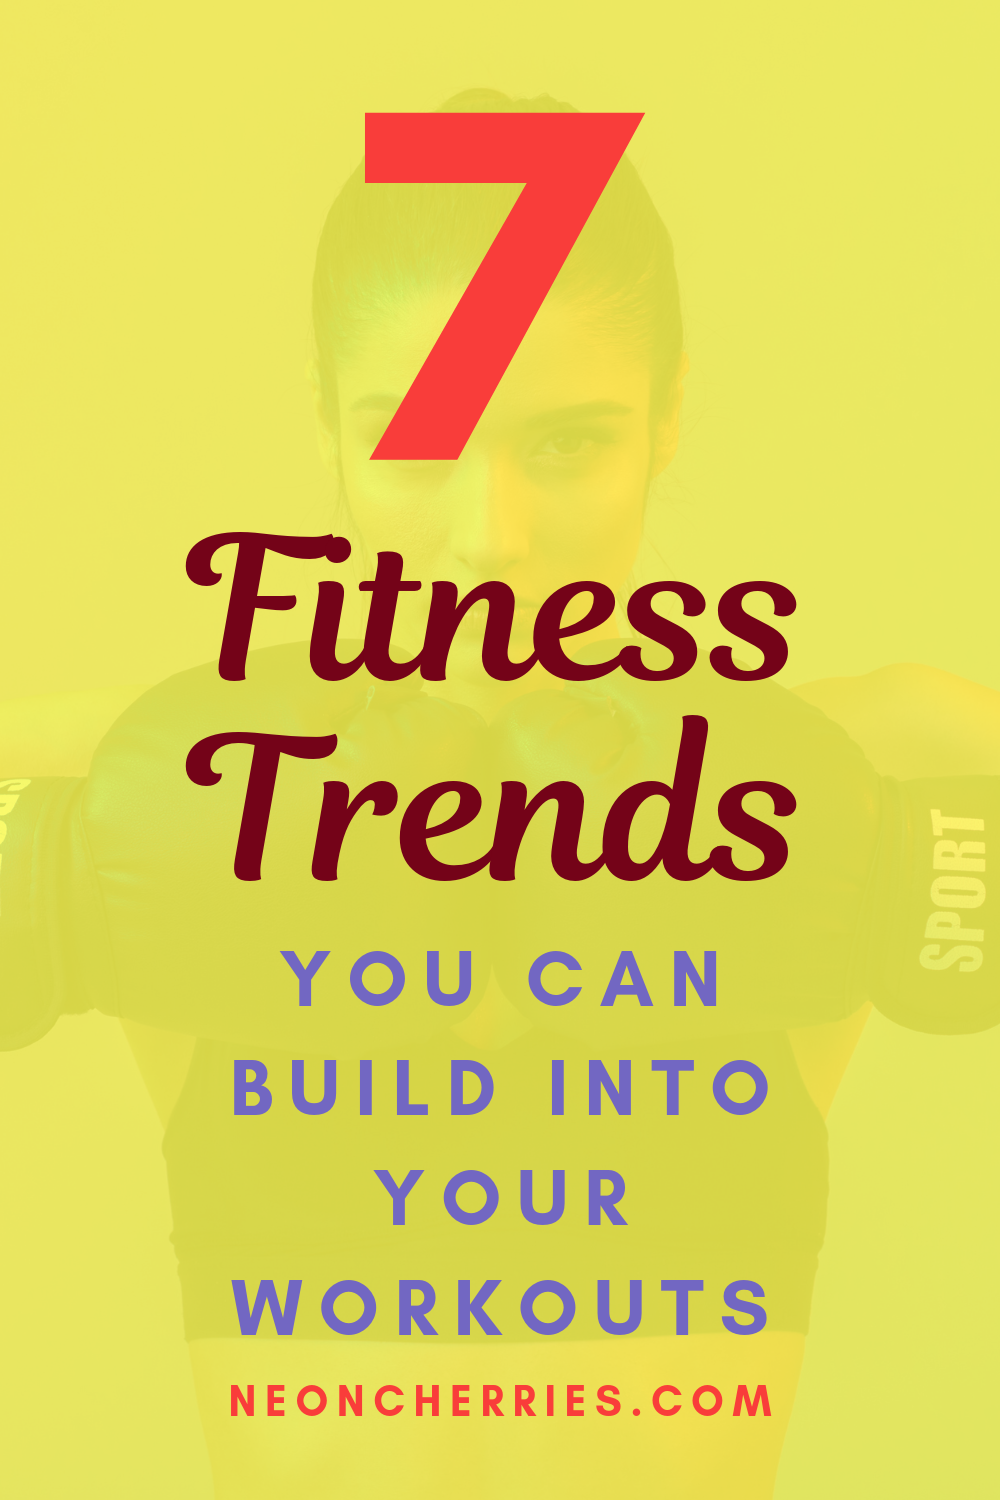 Curious about what the hottest new fitness trends are? This guide explains how to utilize them in yo...